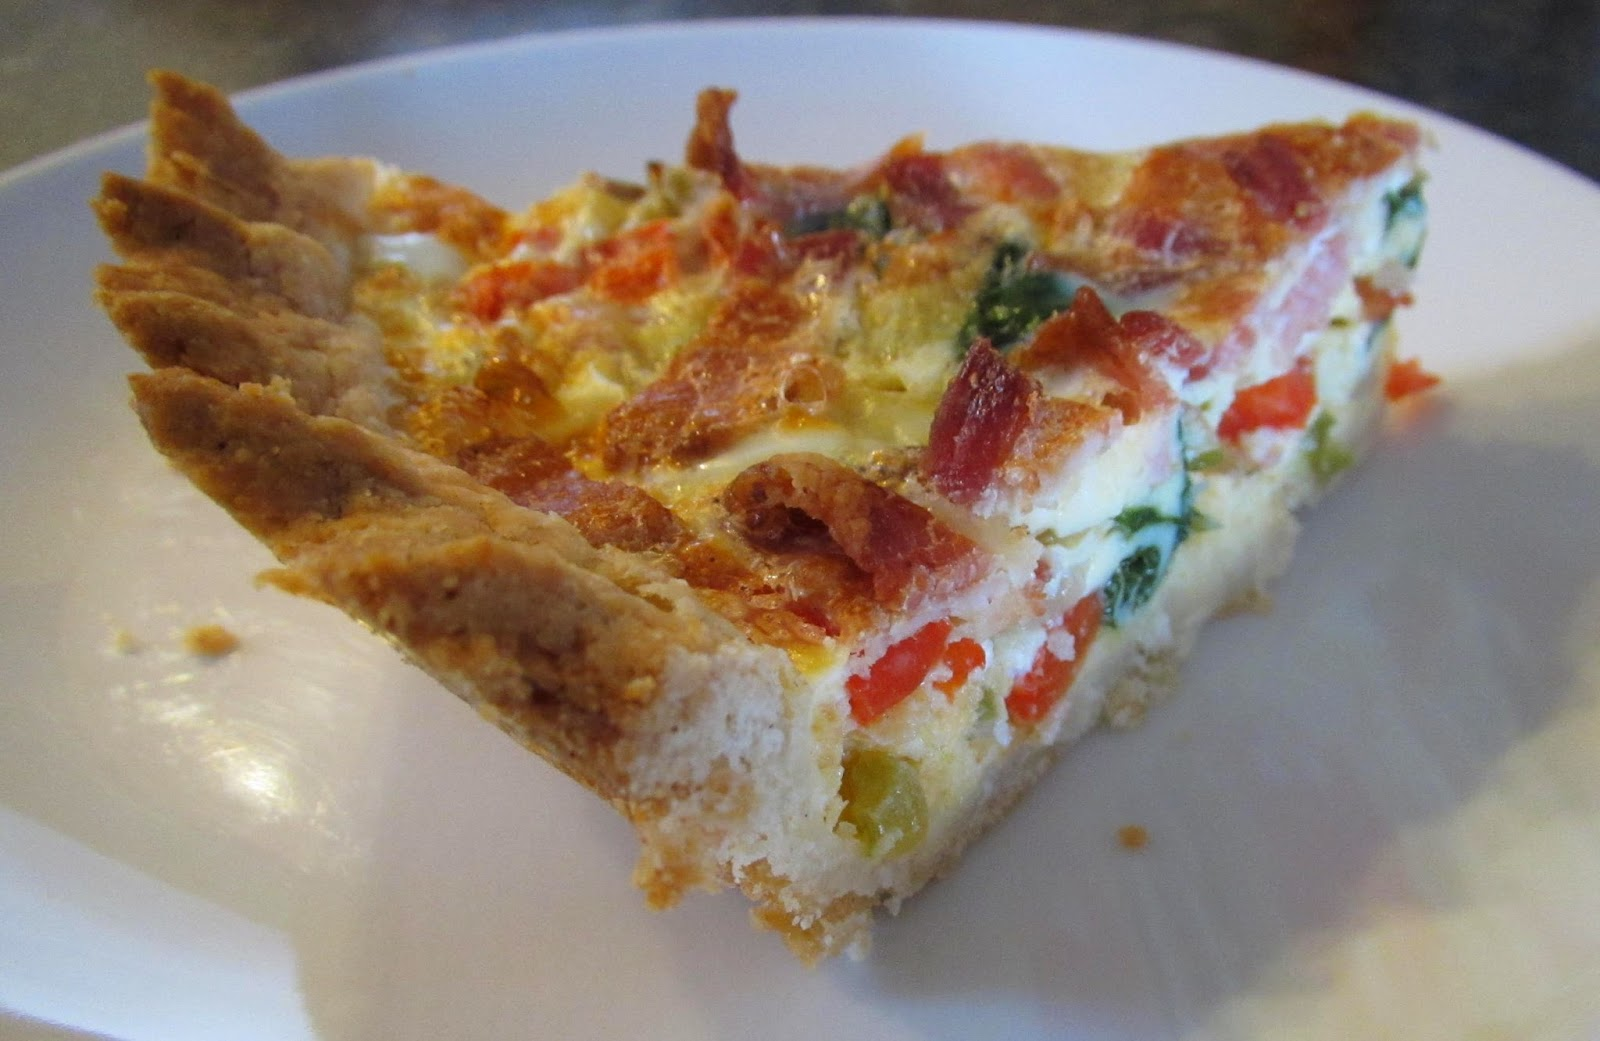 Bacon, Cheddar and Veggie Quiche with GF buttermilk pastry crust